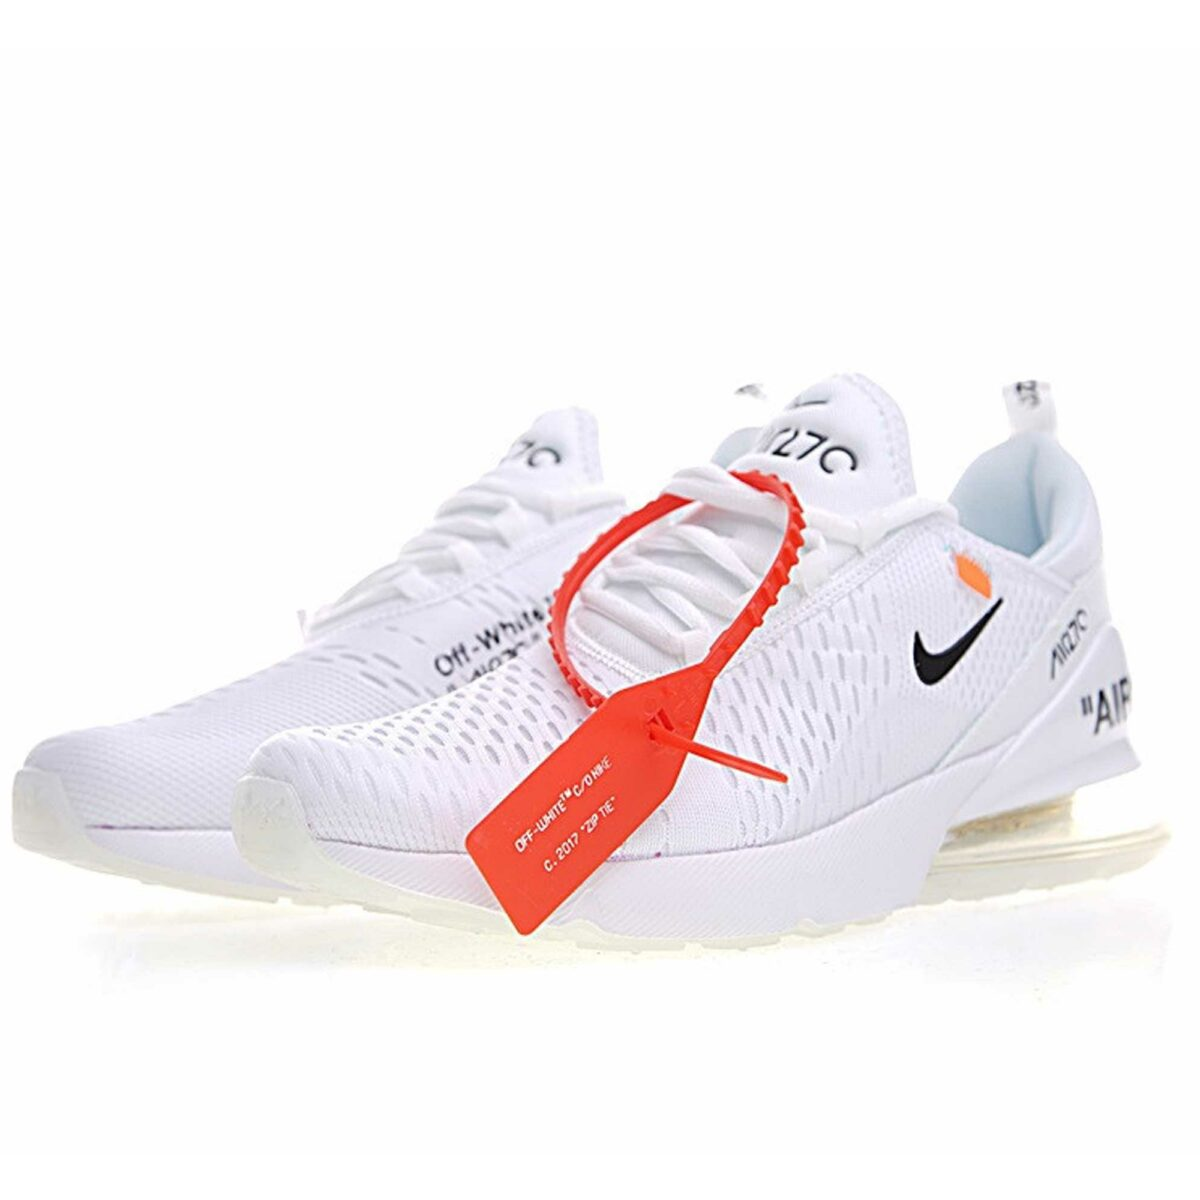 off white x nike air max 270 white купить